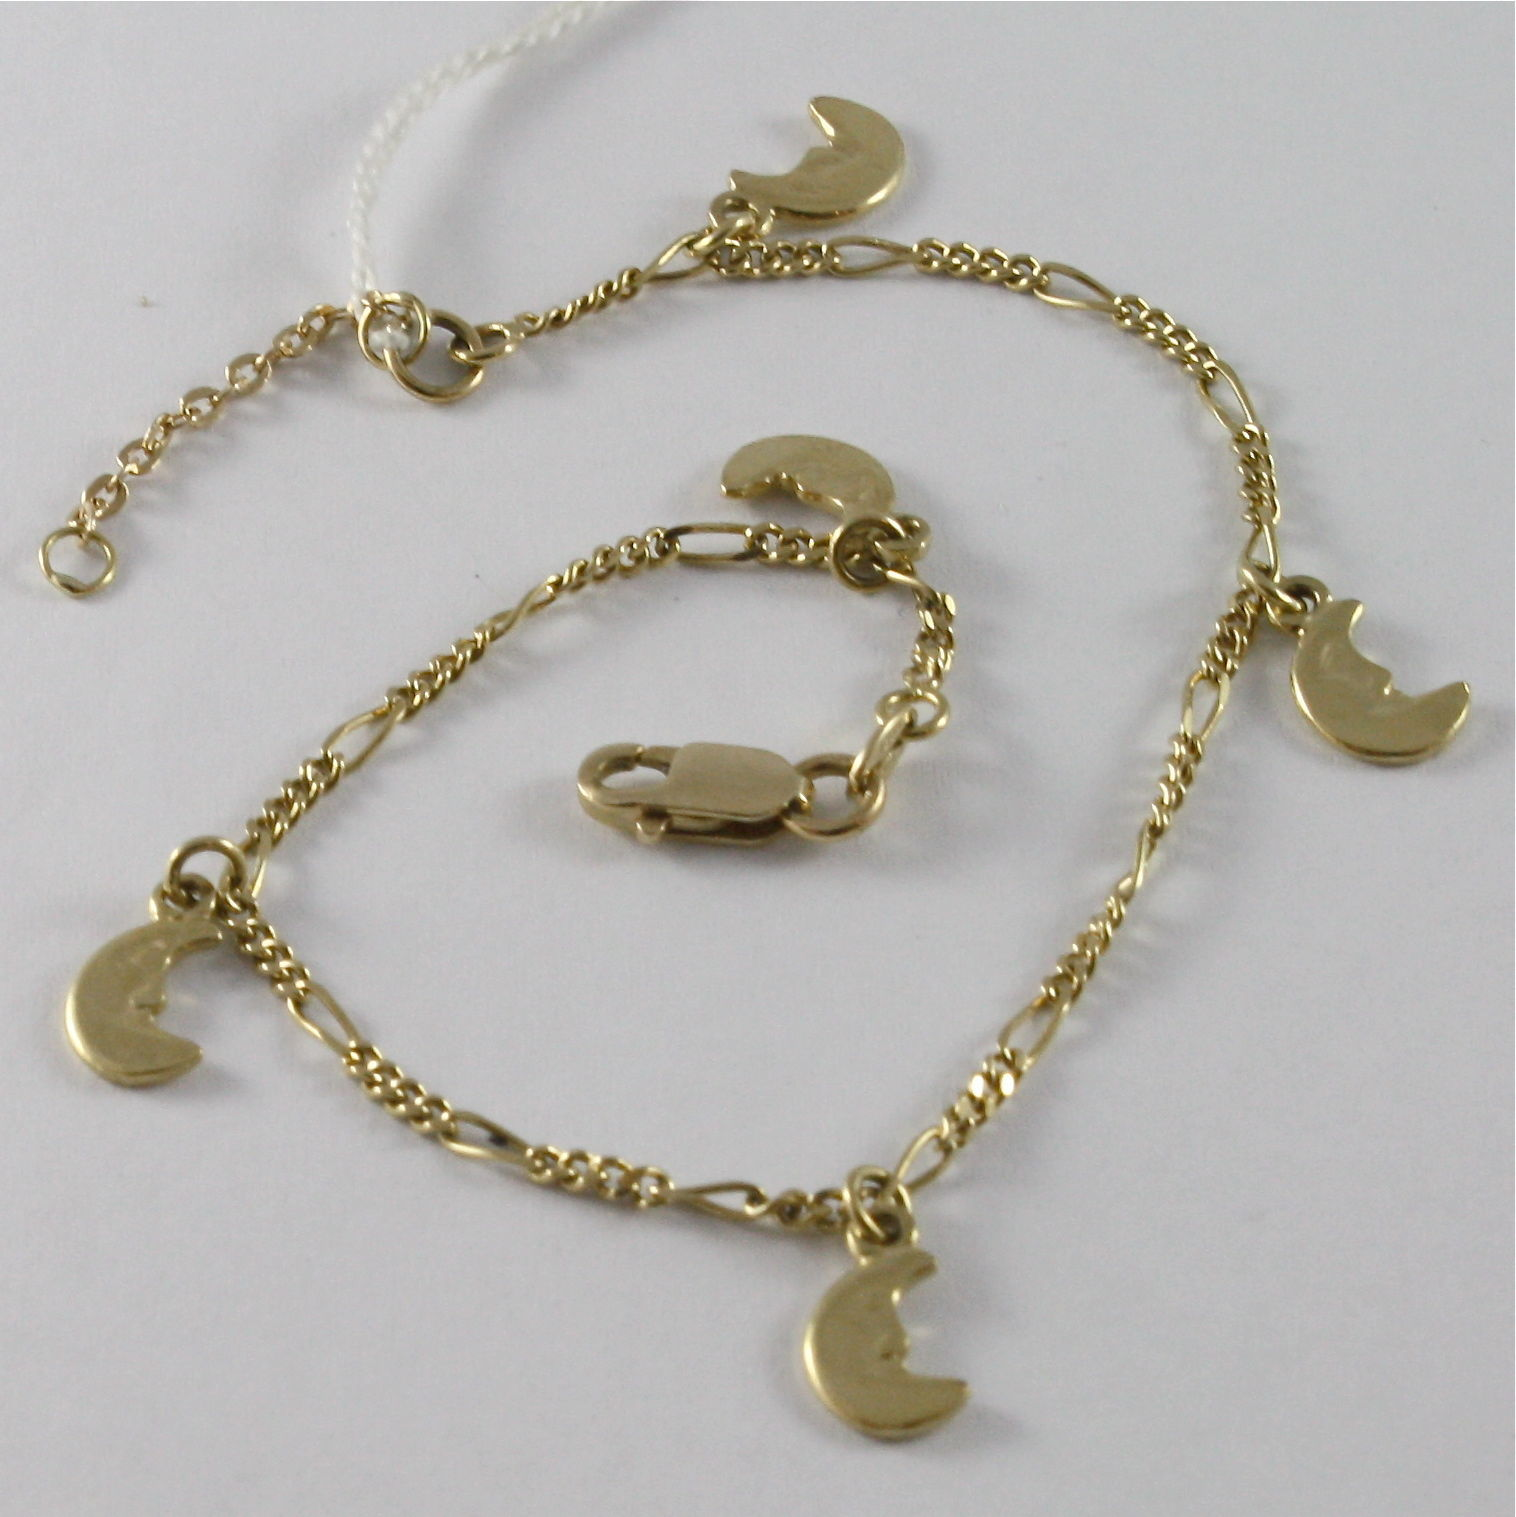 SOLID 18K YELLOW GOLD BRACELET WITH MOON PENDANT, HALF MOON, MADE IN ITALY